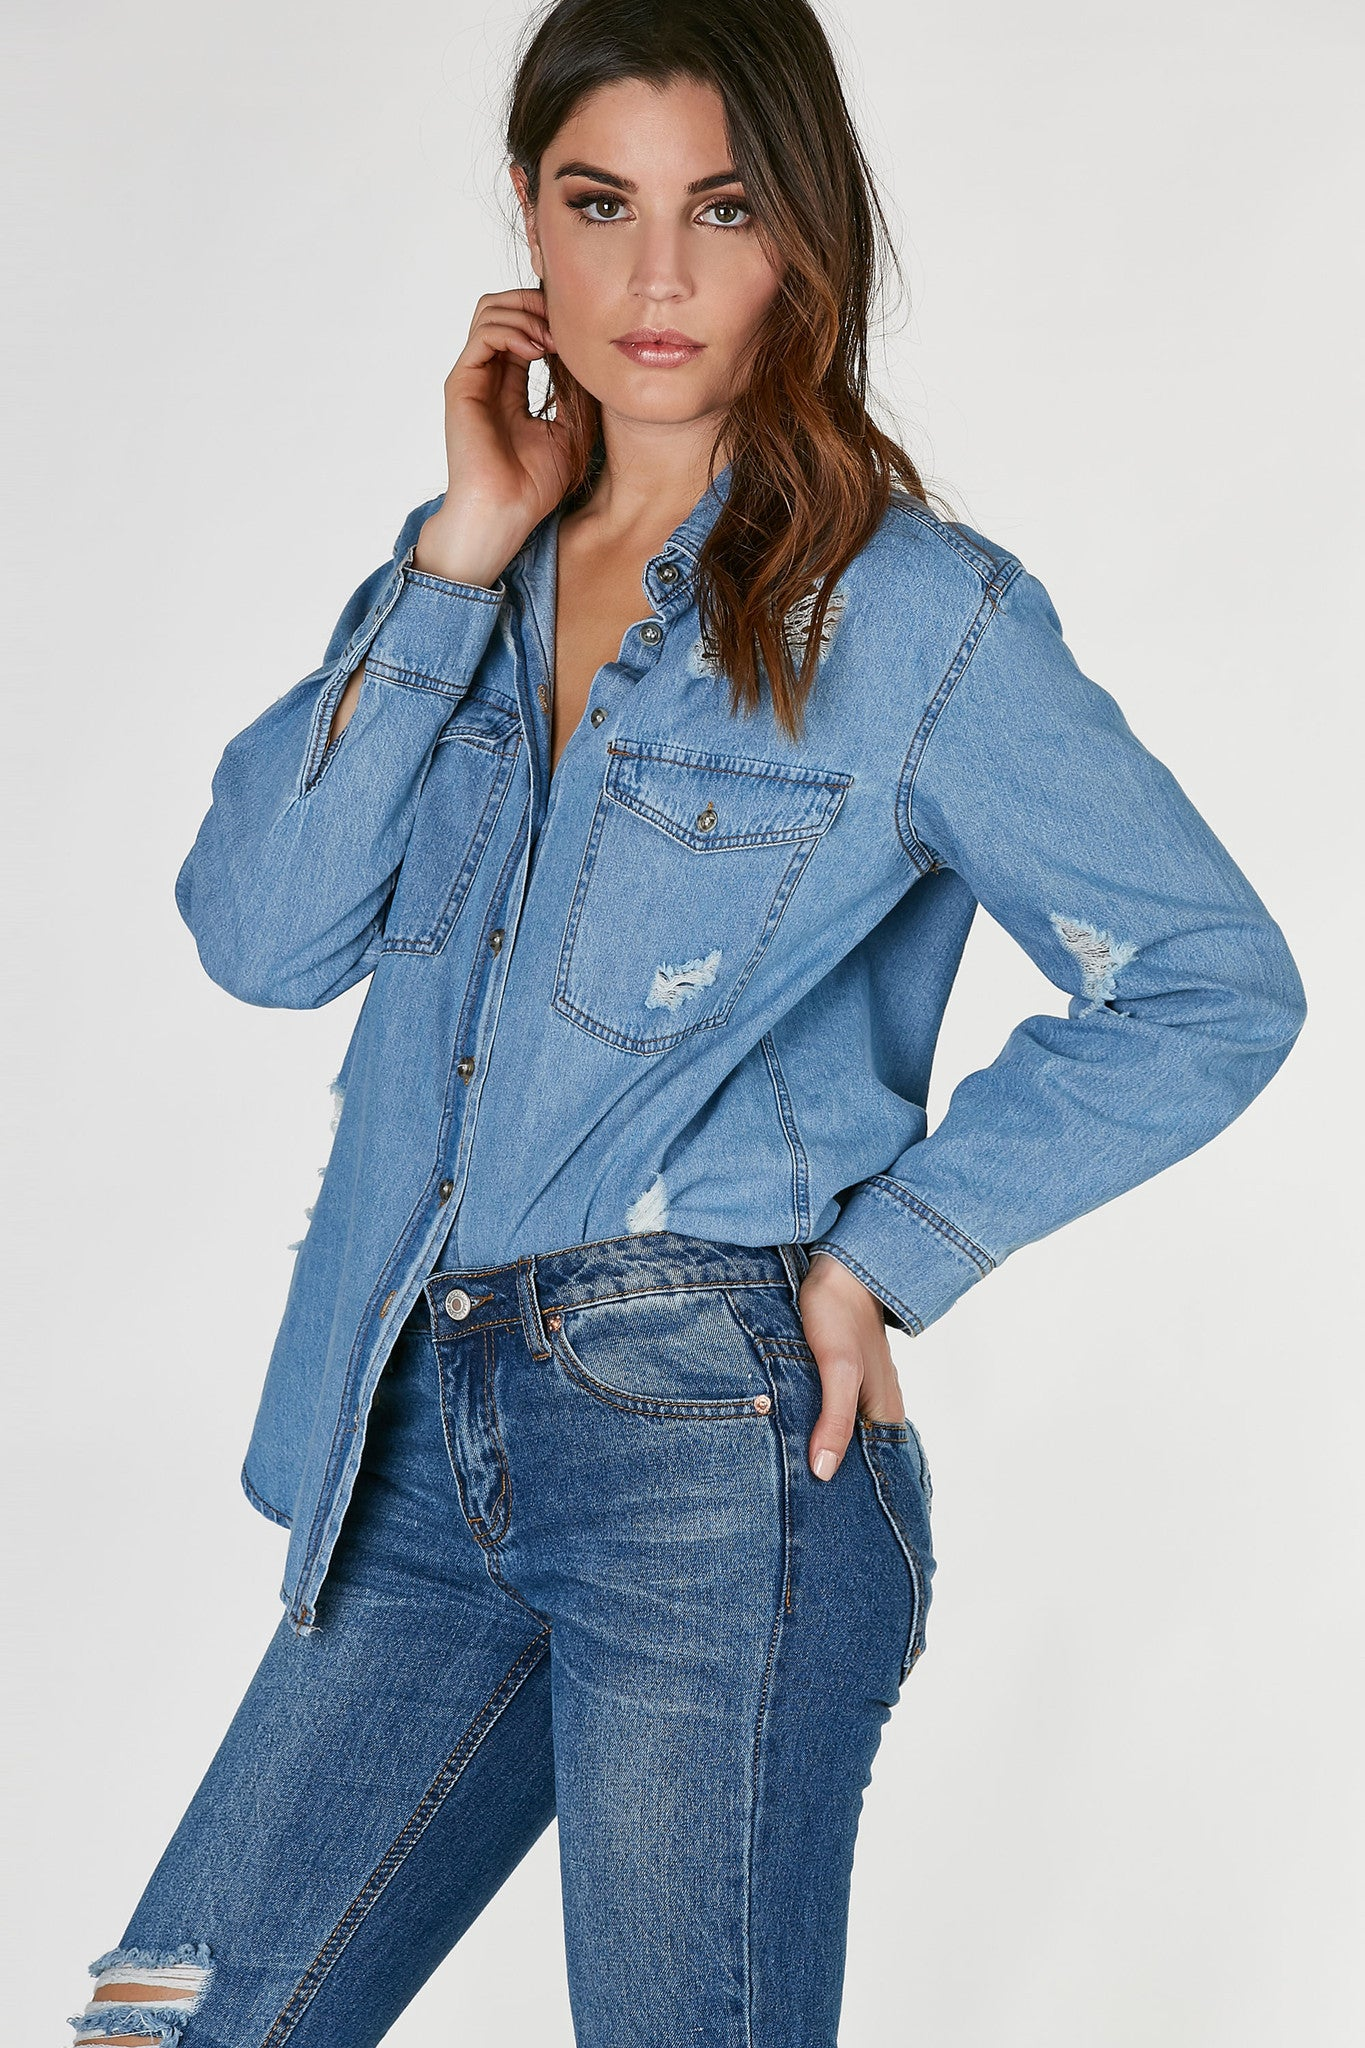 Classic chambray button down with oversized fit and distressing throughout. Rounded, longline hem with slightly longer back.